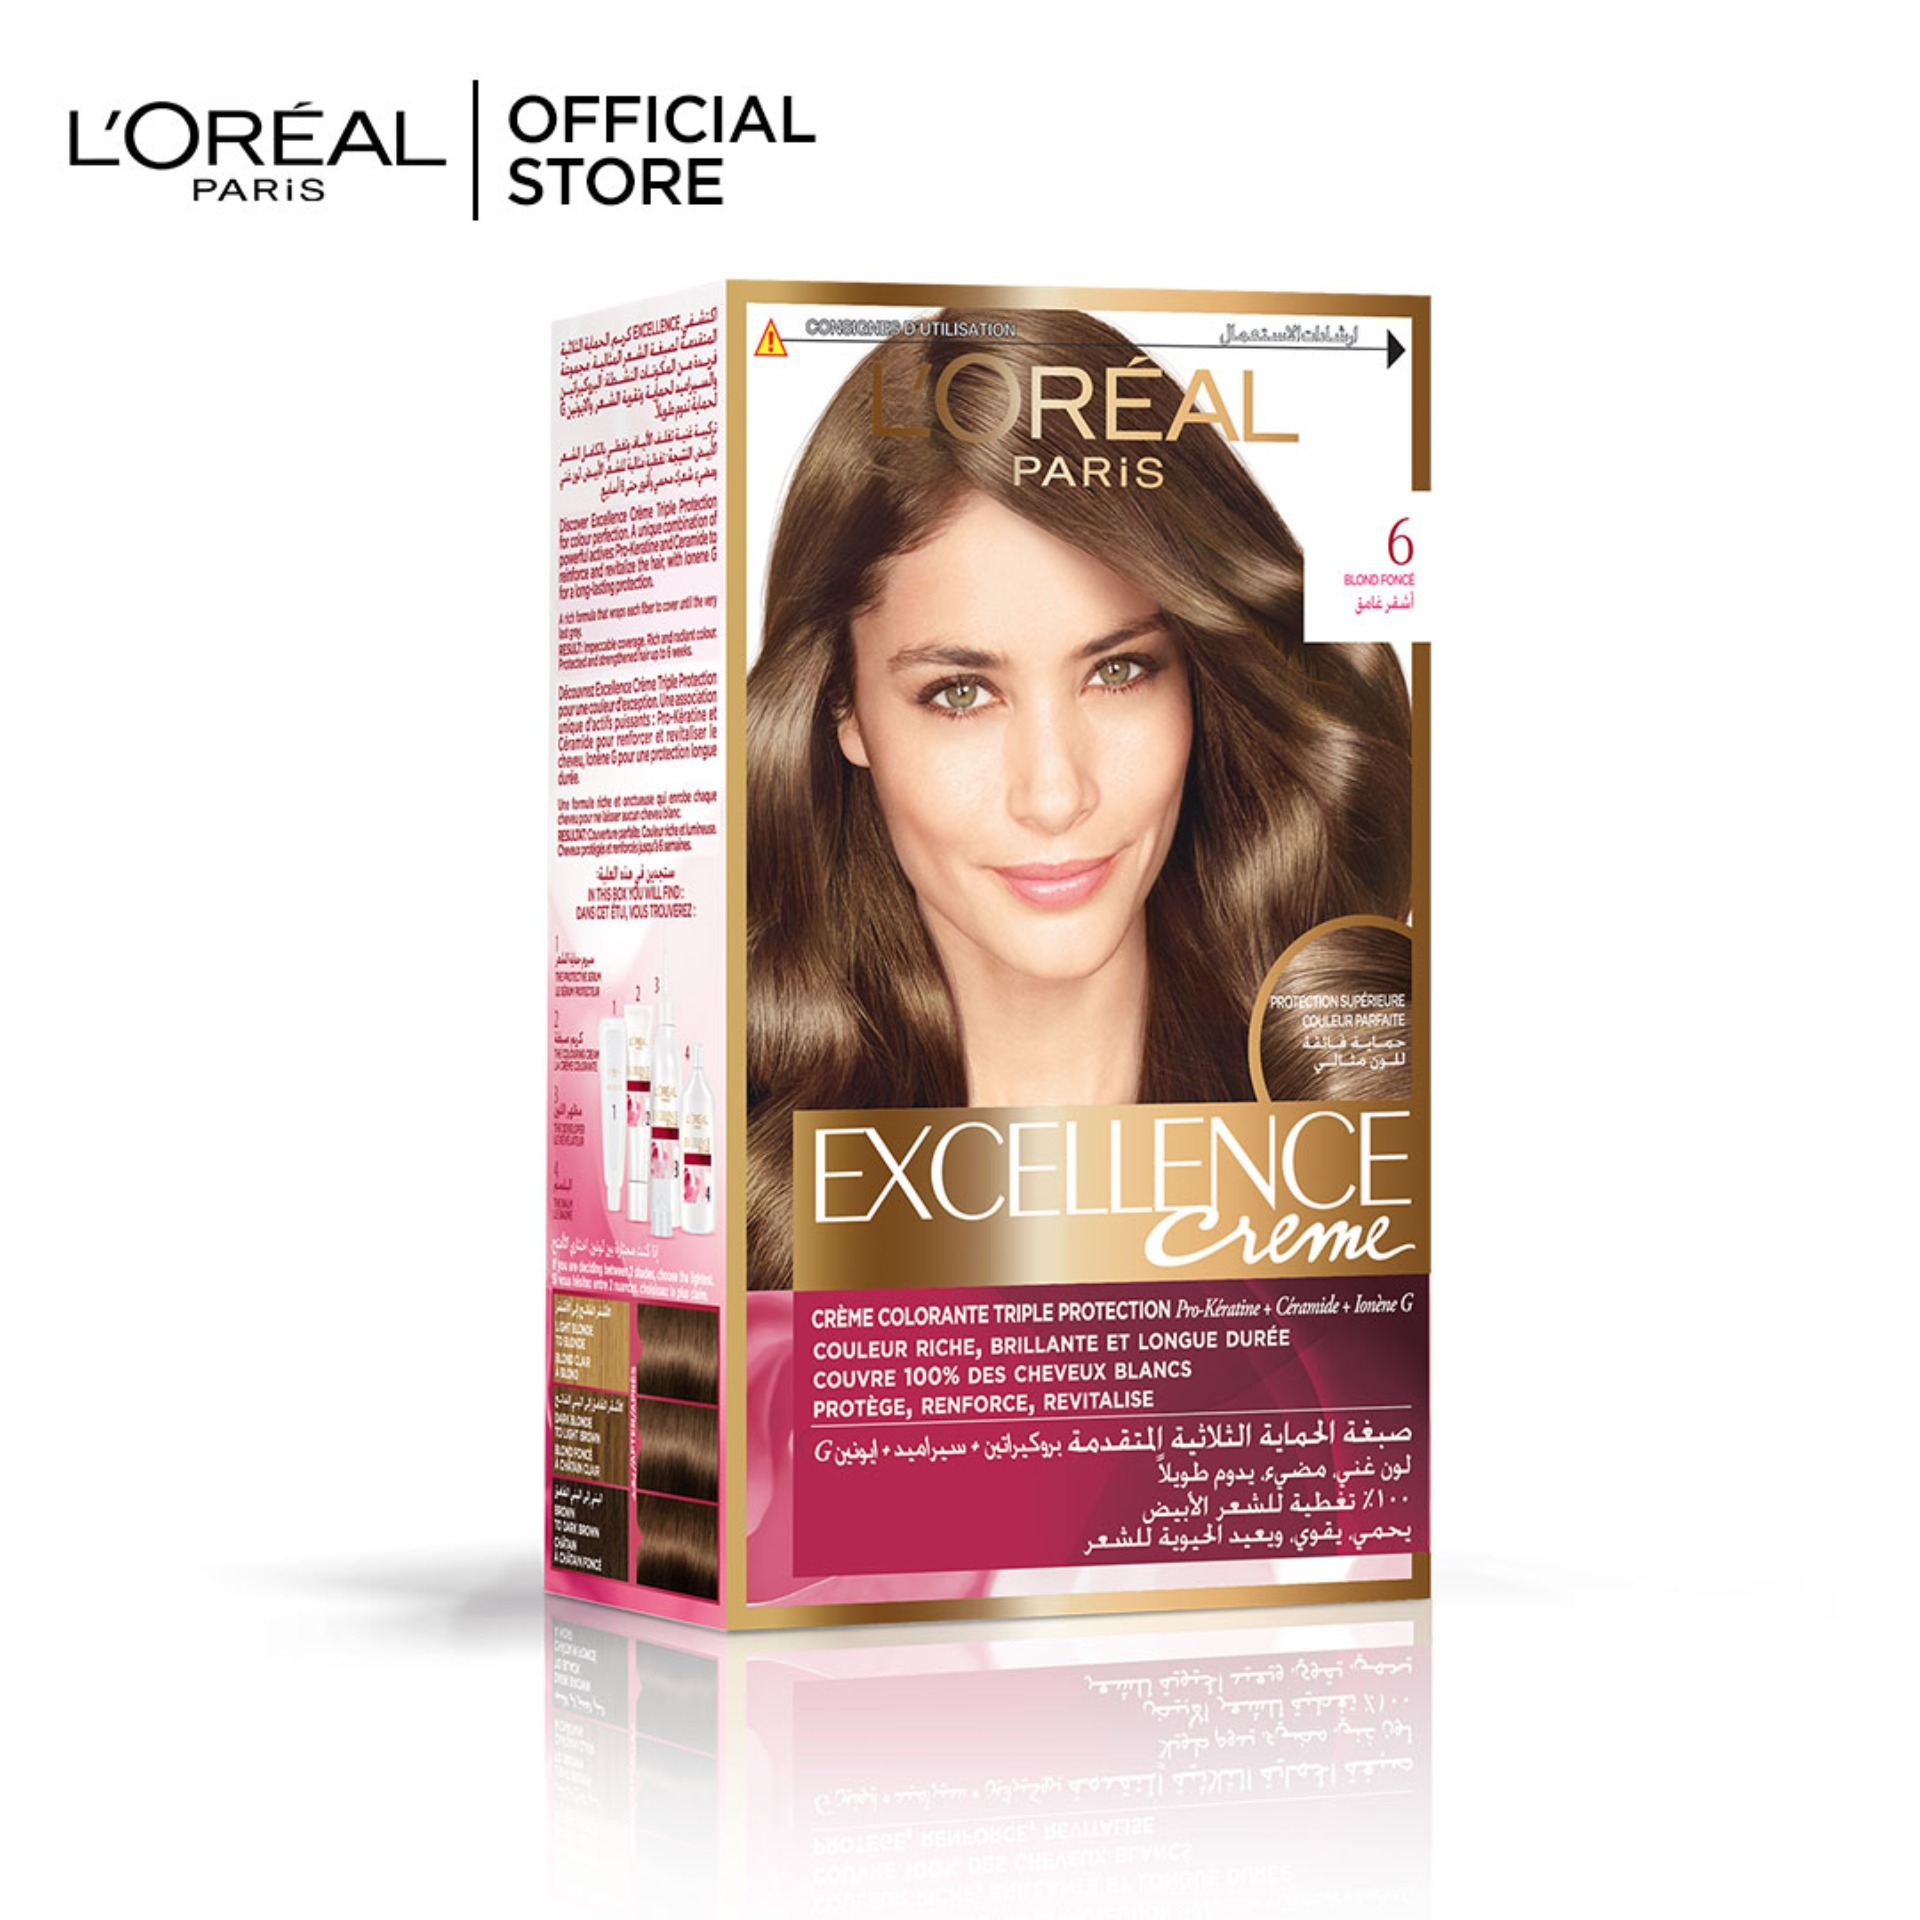 L Oreal Paris Hair Coloring Best Price In Pakistan Daraz Pk